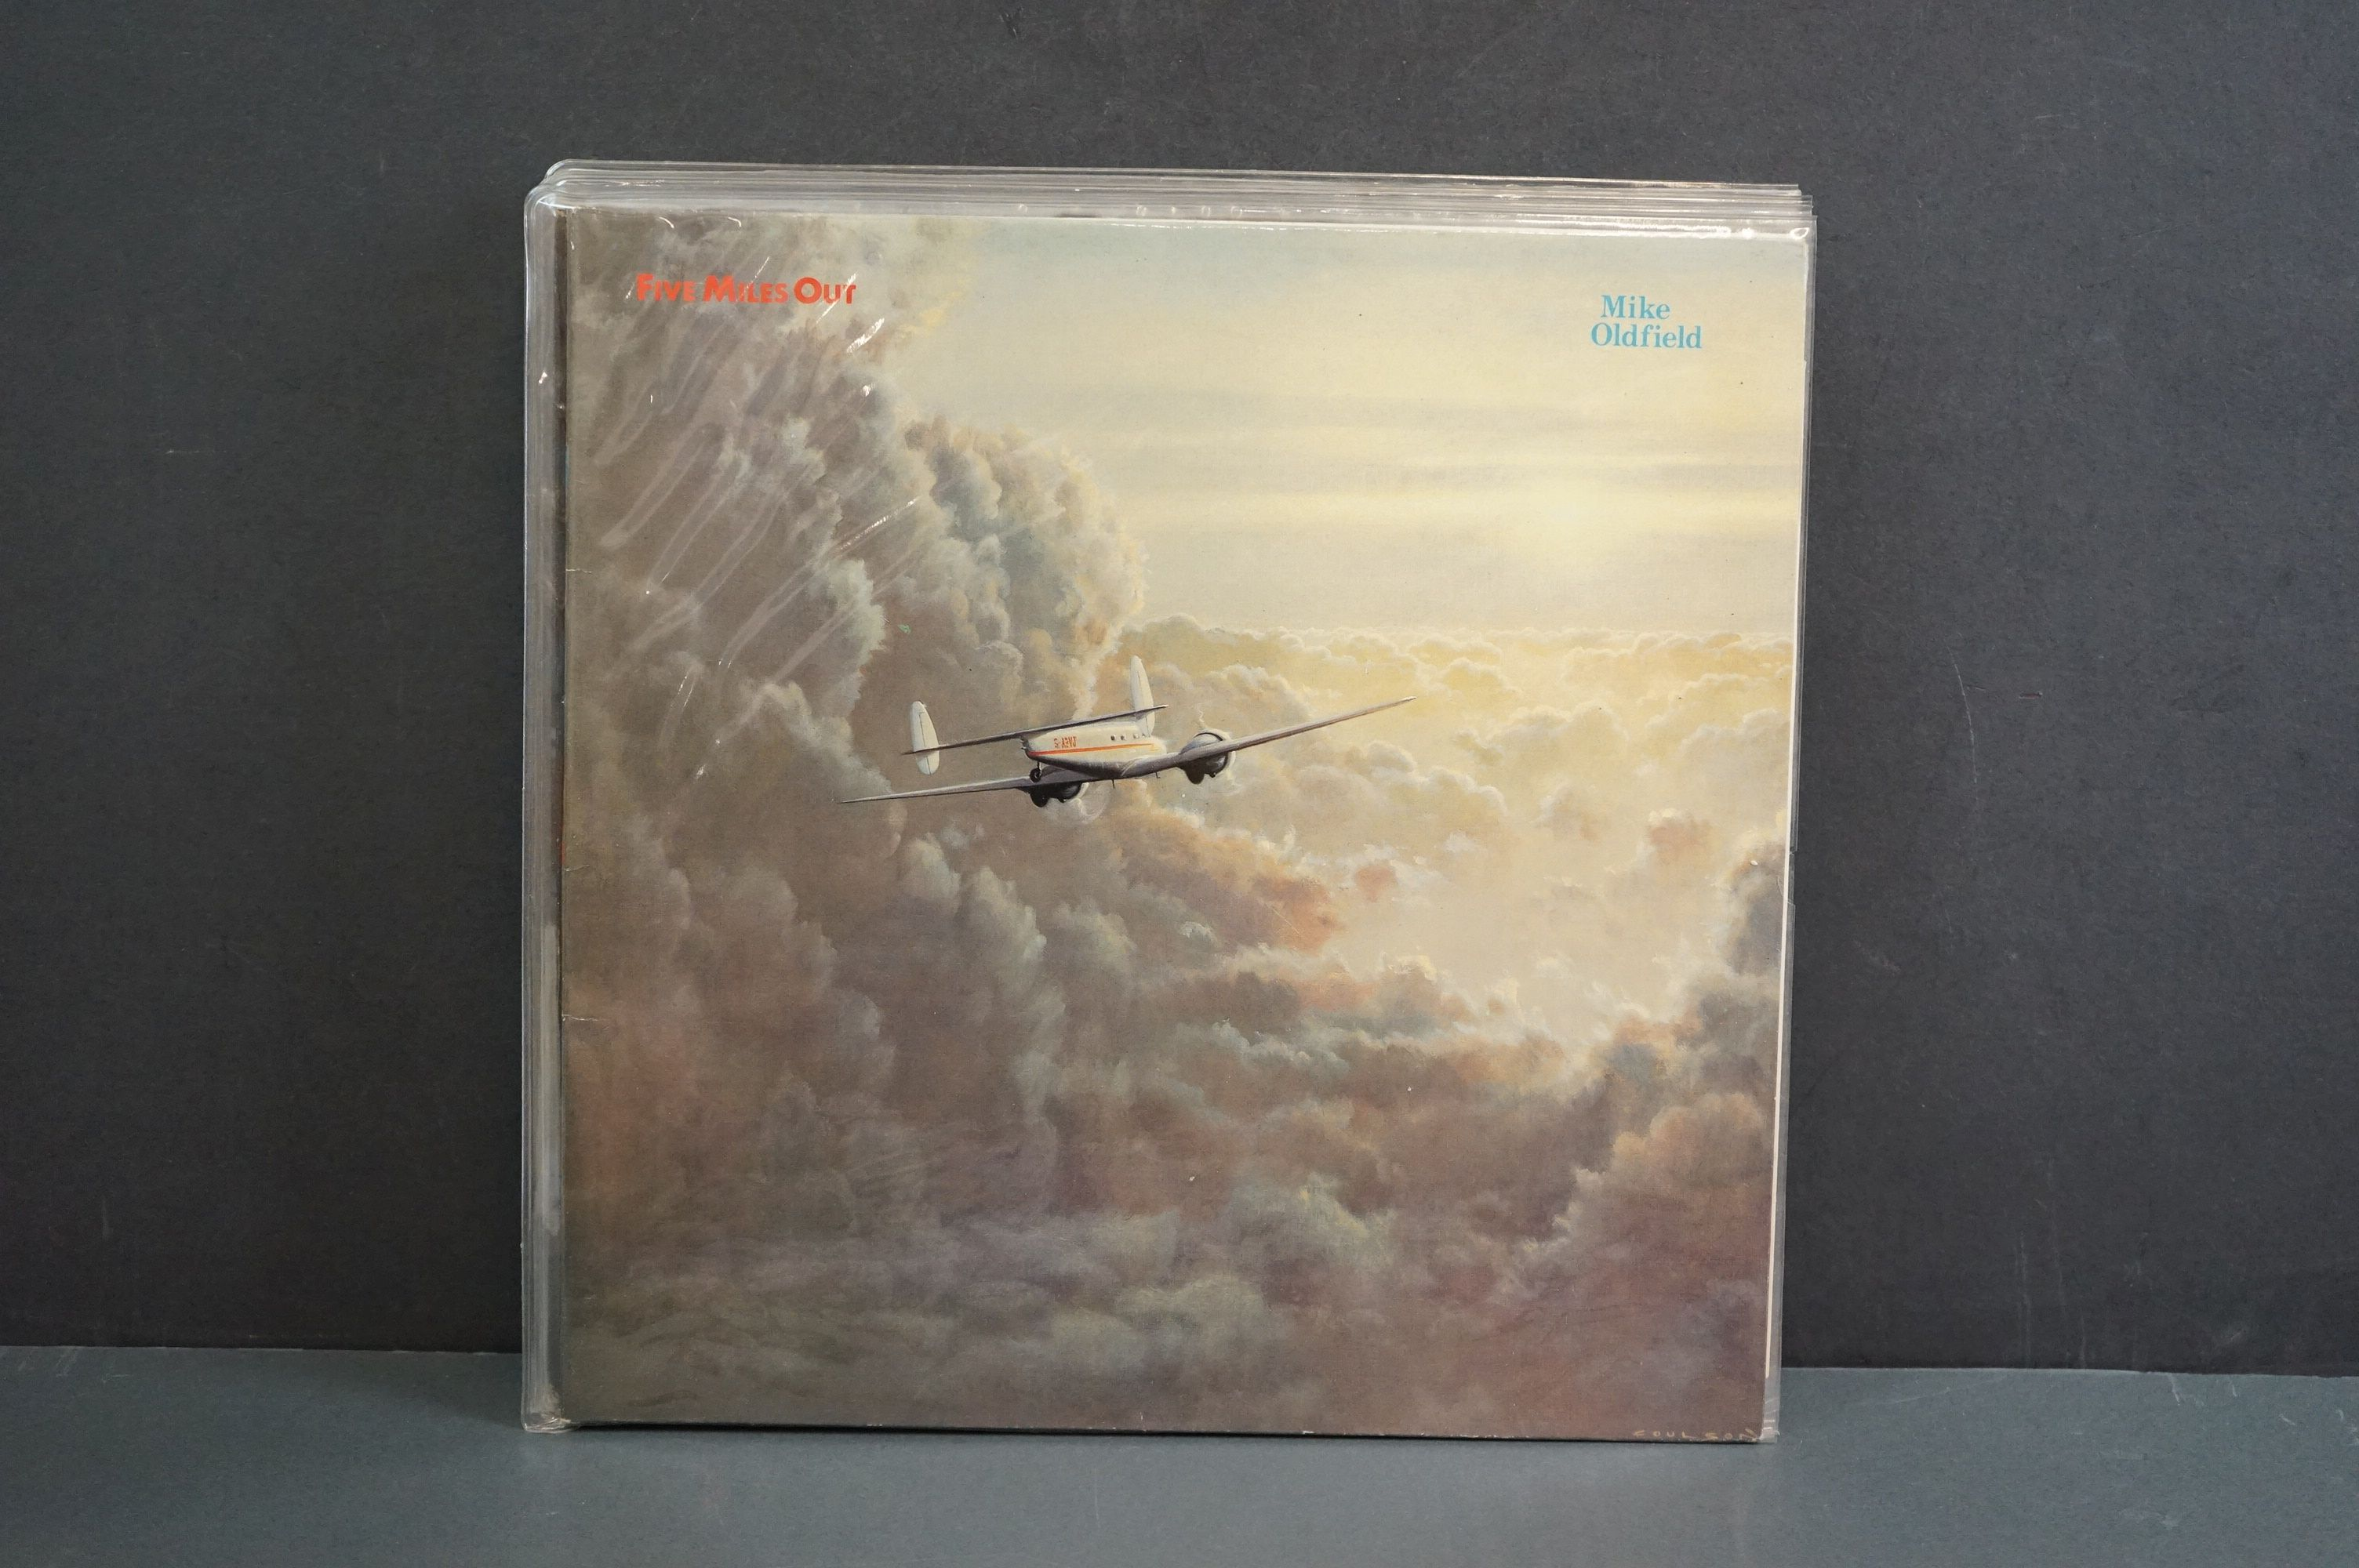 Vinyl - 14 Mike Oldfield LPs to include Tubular Bells, Five Miles Out, Best Of, Discovery etc, - Image 6 of 15